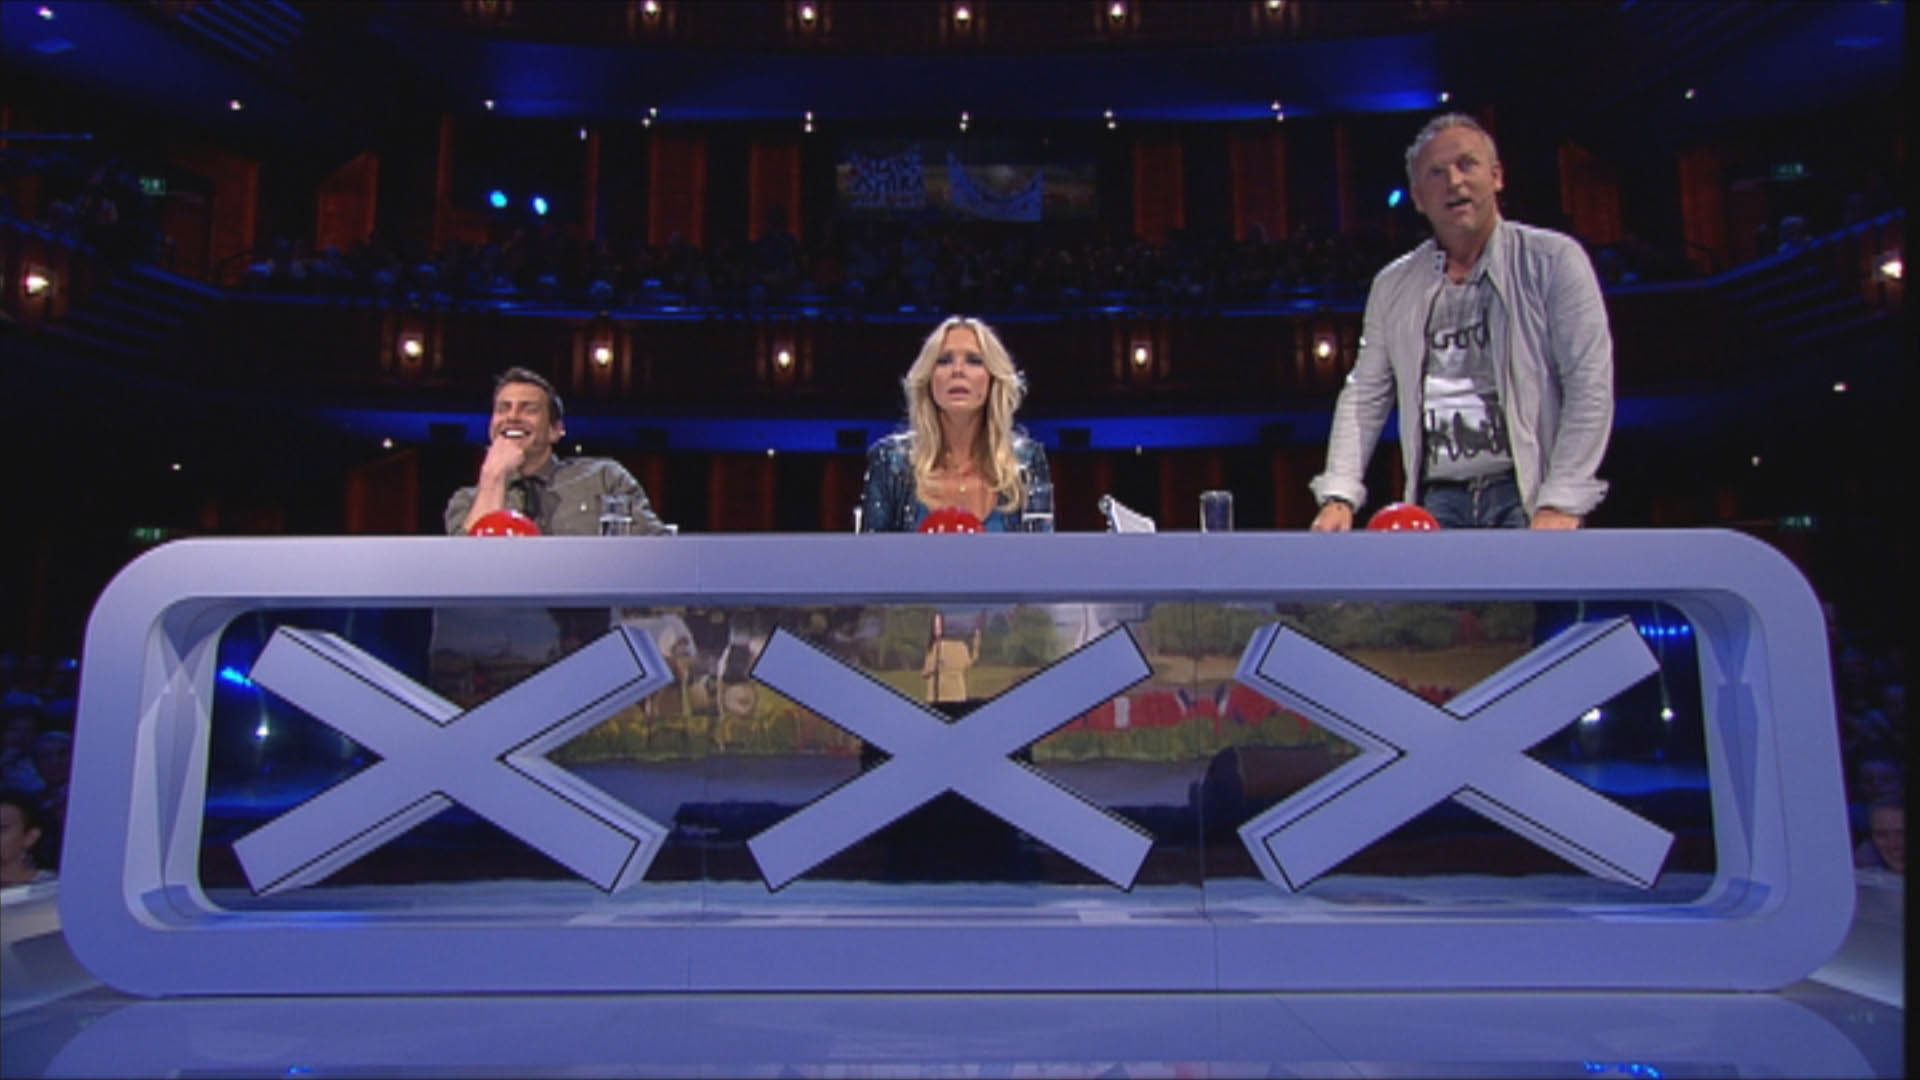 The Best of Holland's Got Talent